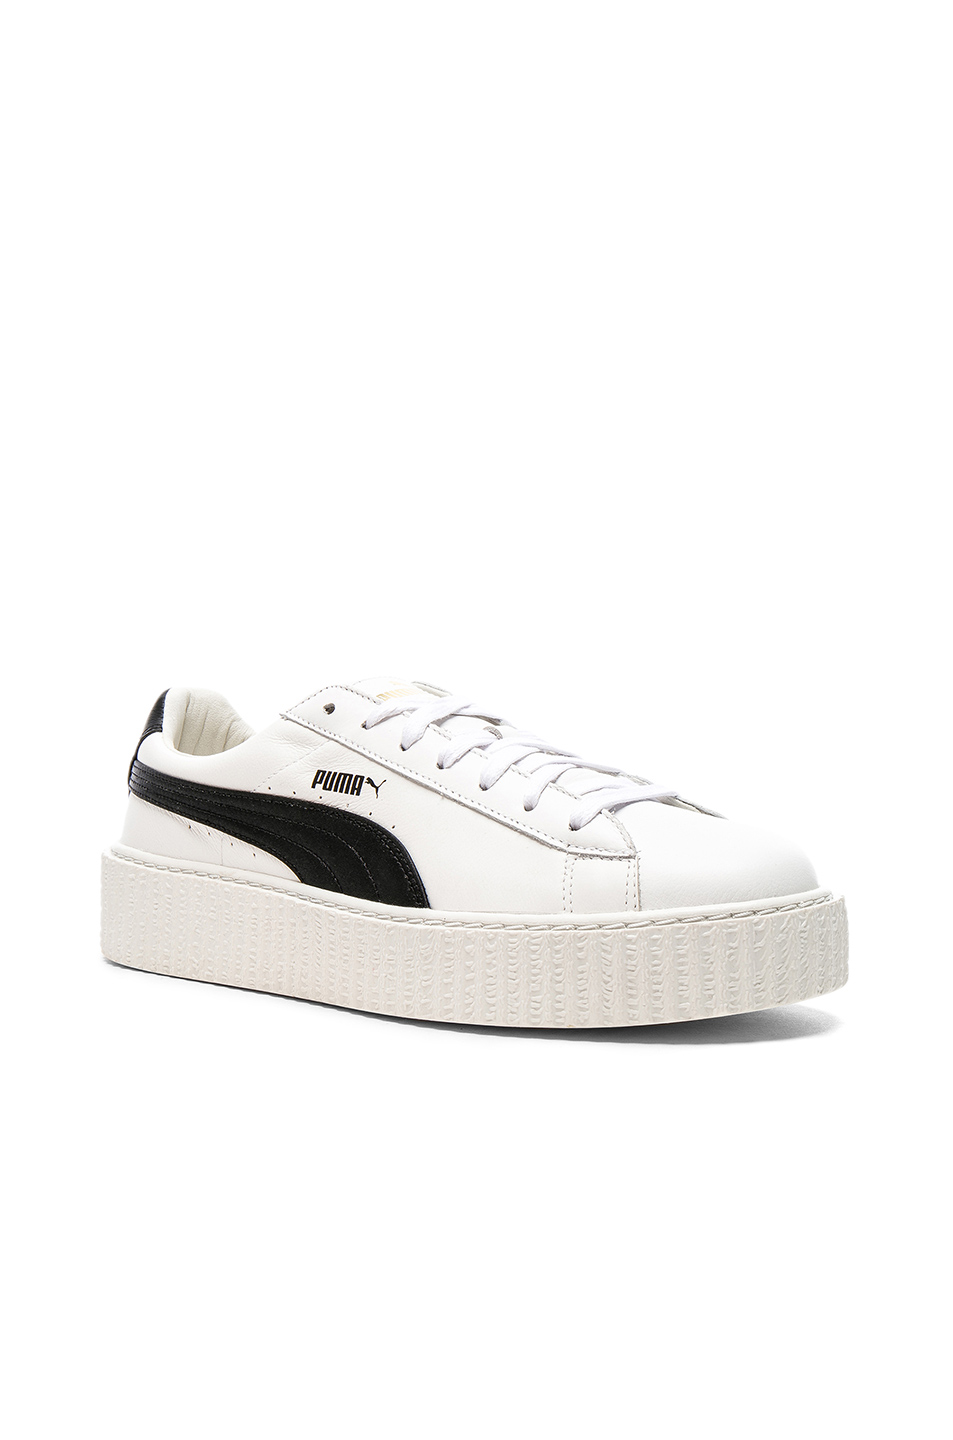 Fenty by Puma Cracked Leather Creepers in White